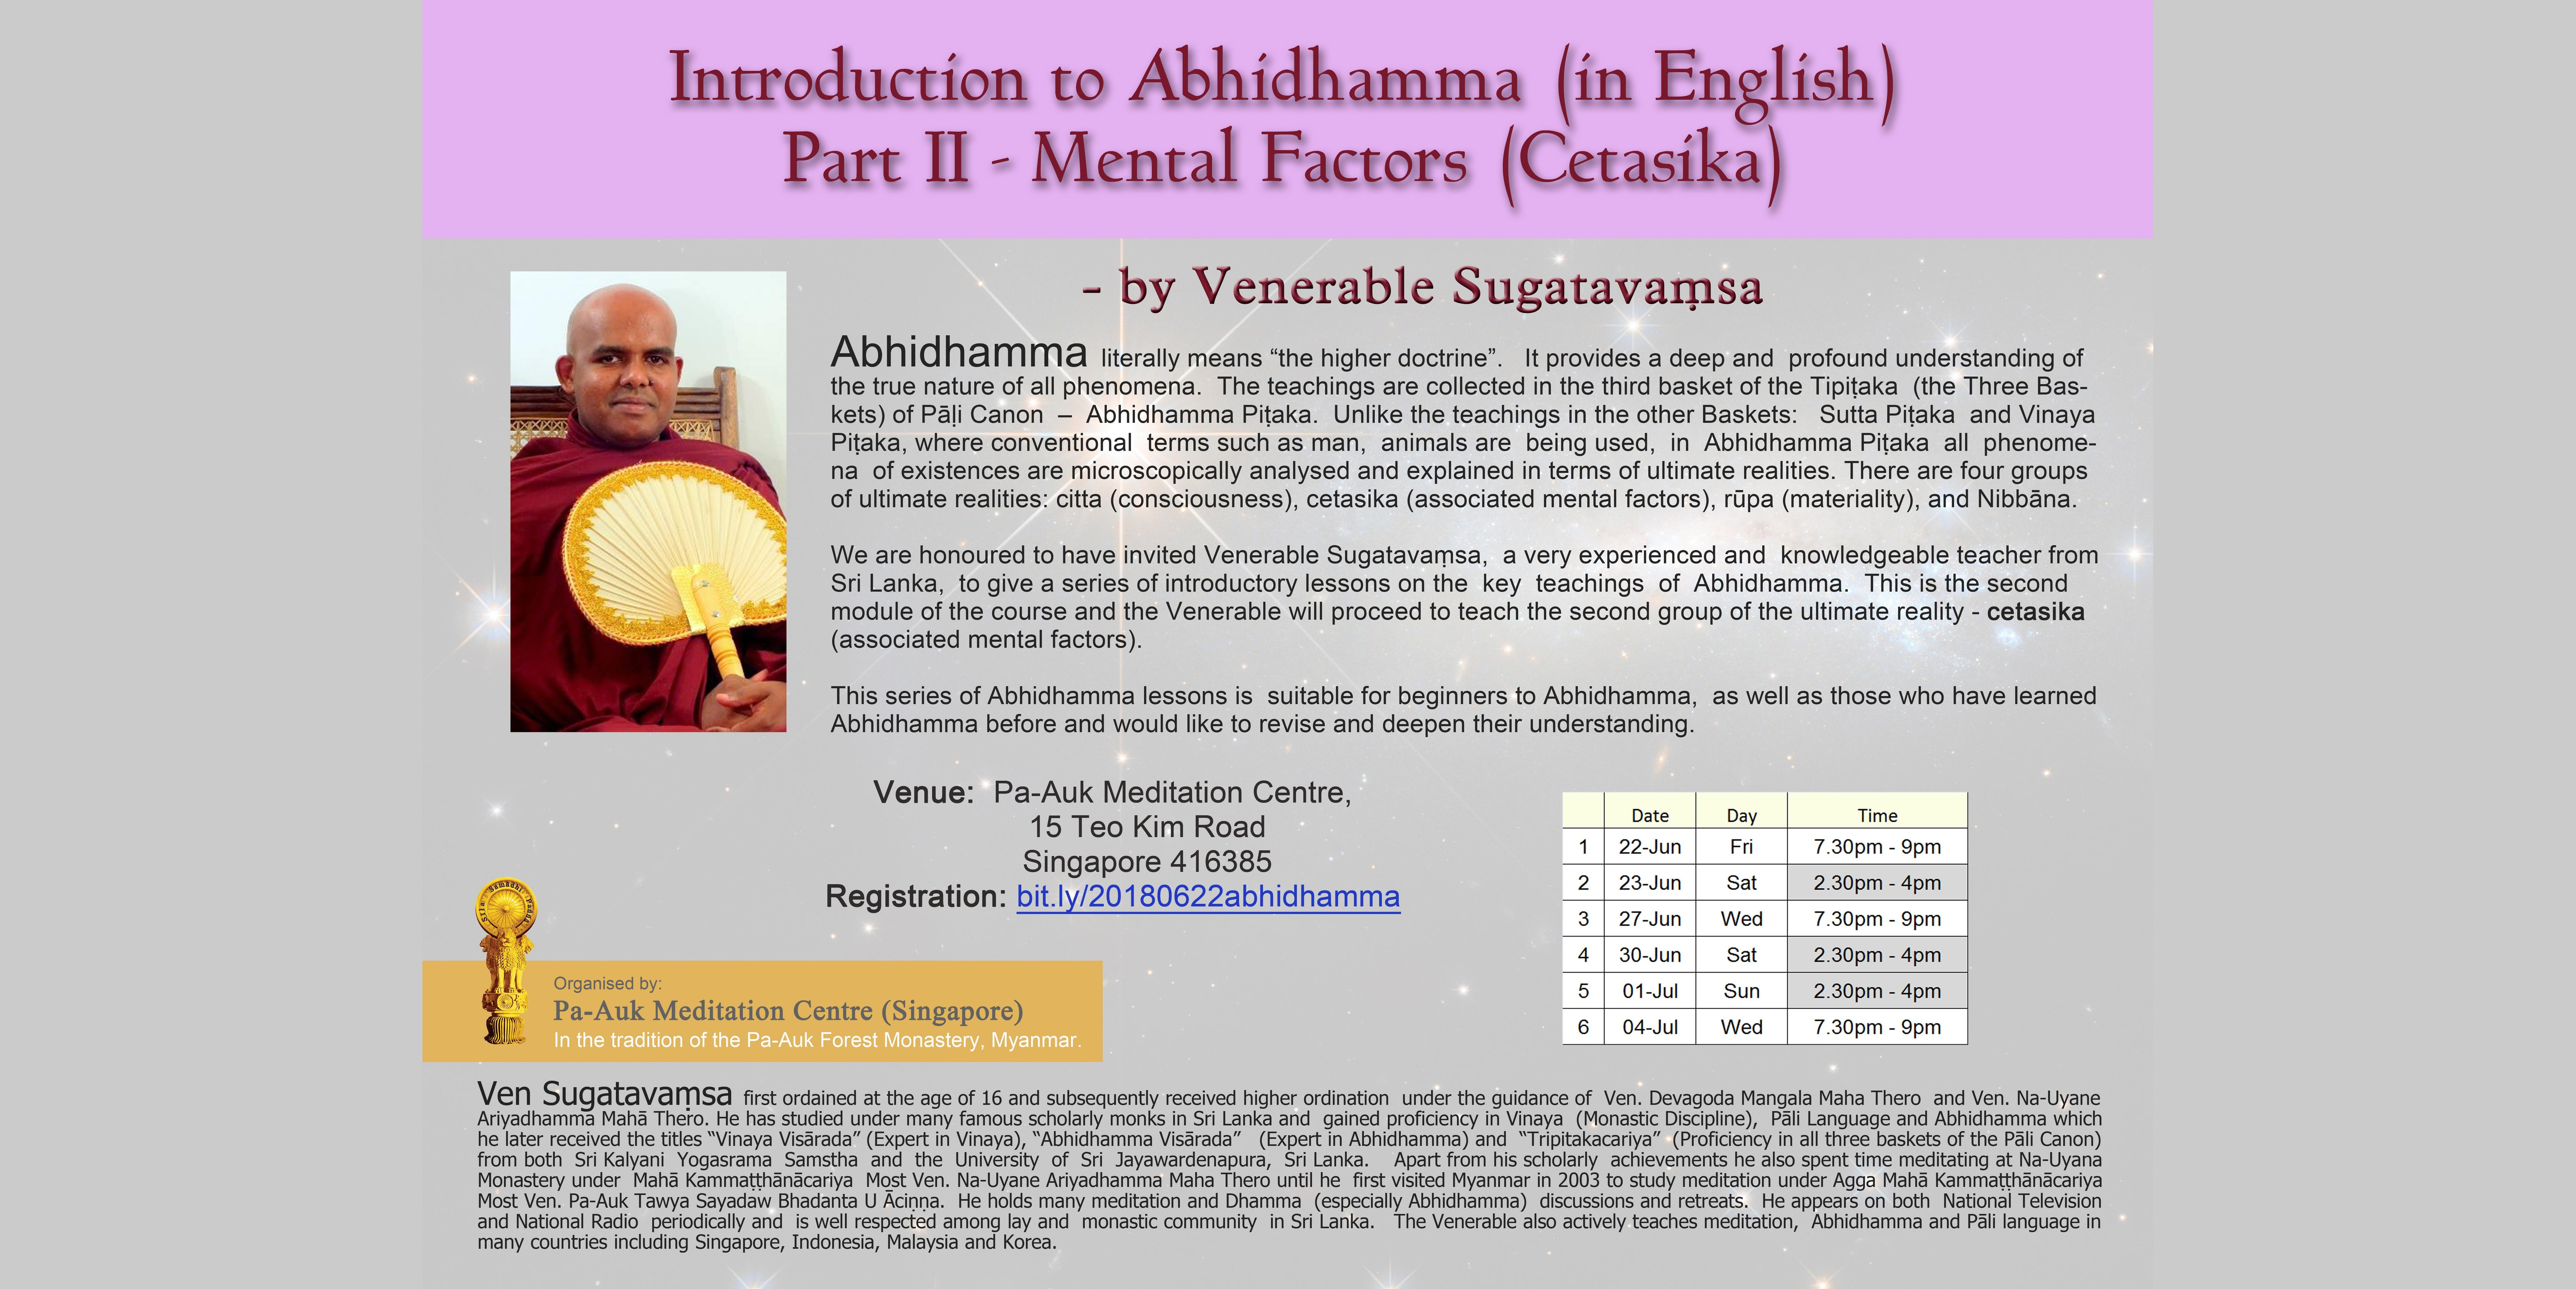 Introduction to Abhidhamma (in English) - Mental Factors (Cetasika) - 22 June to 4 July 2018 (6 lessons)